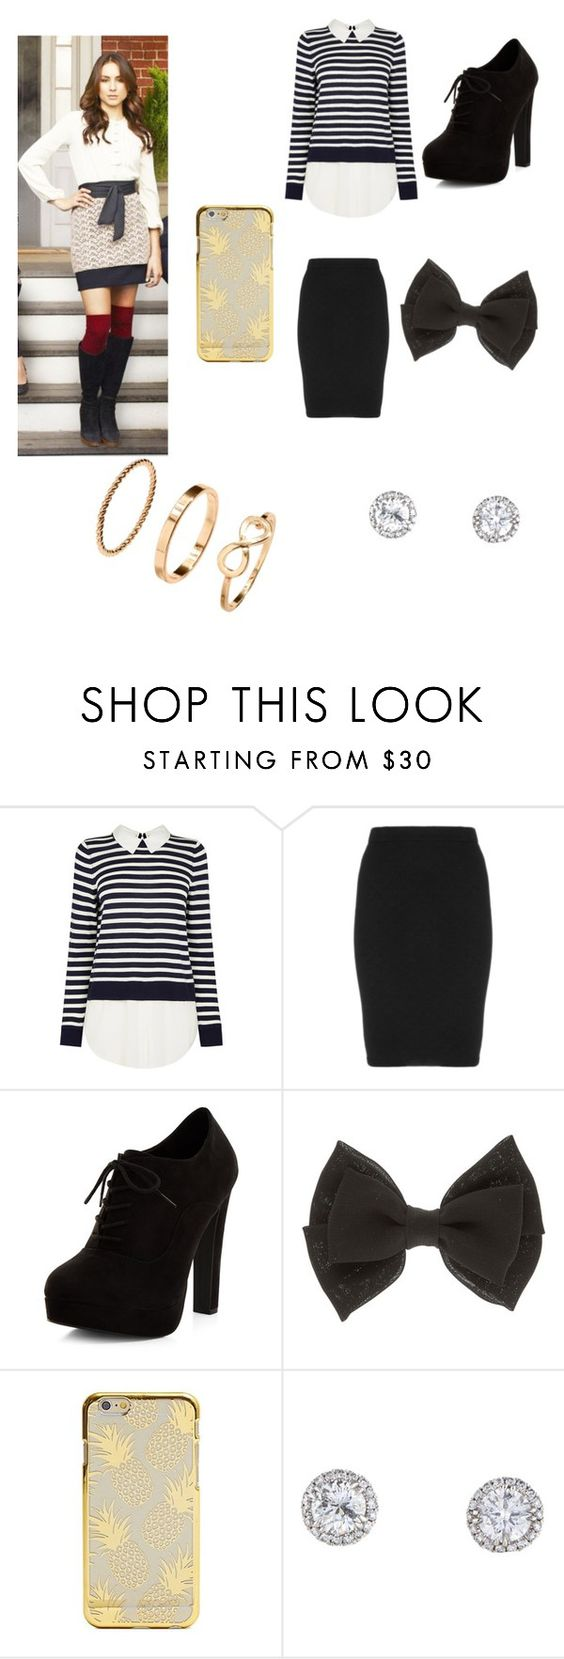 """Spencer"" by sarahgale98 ❤ liked on Polyvore featuring Manon Baptiste and New Look"